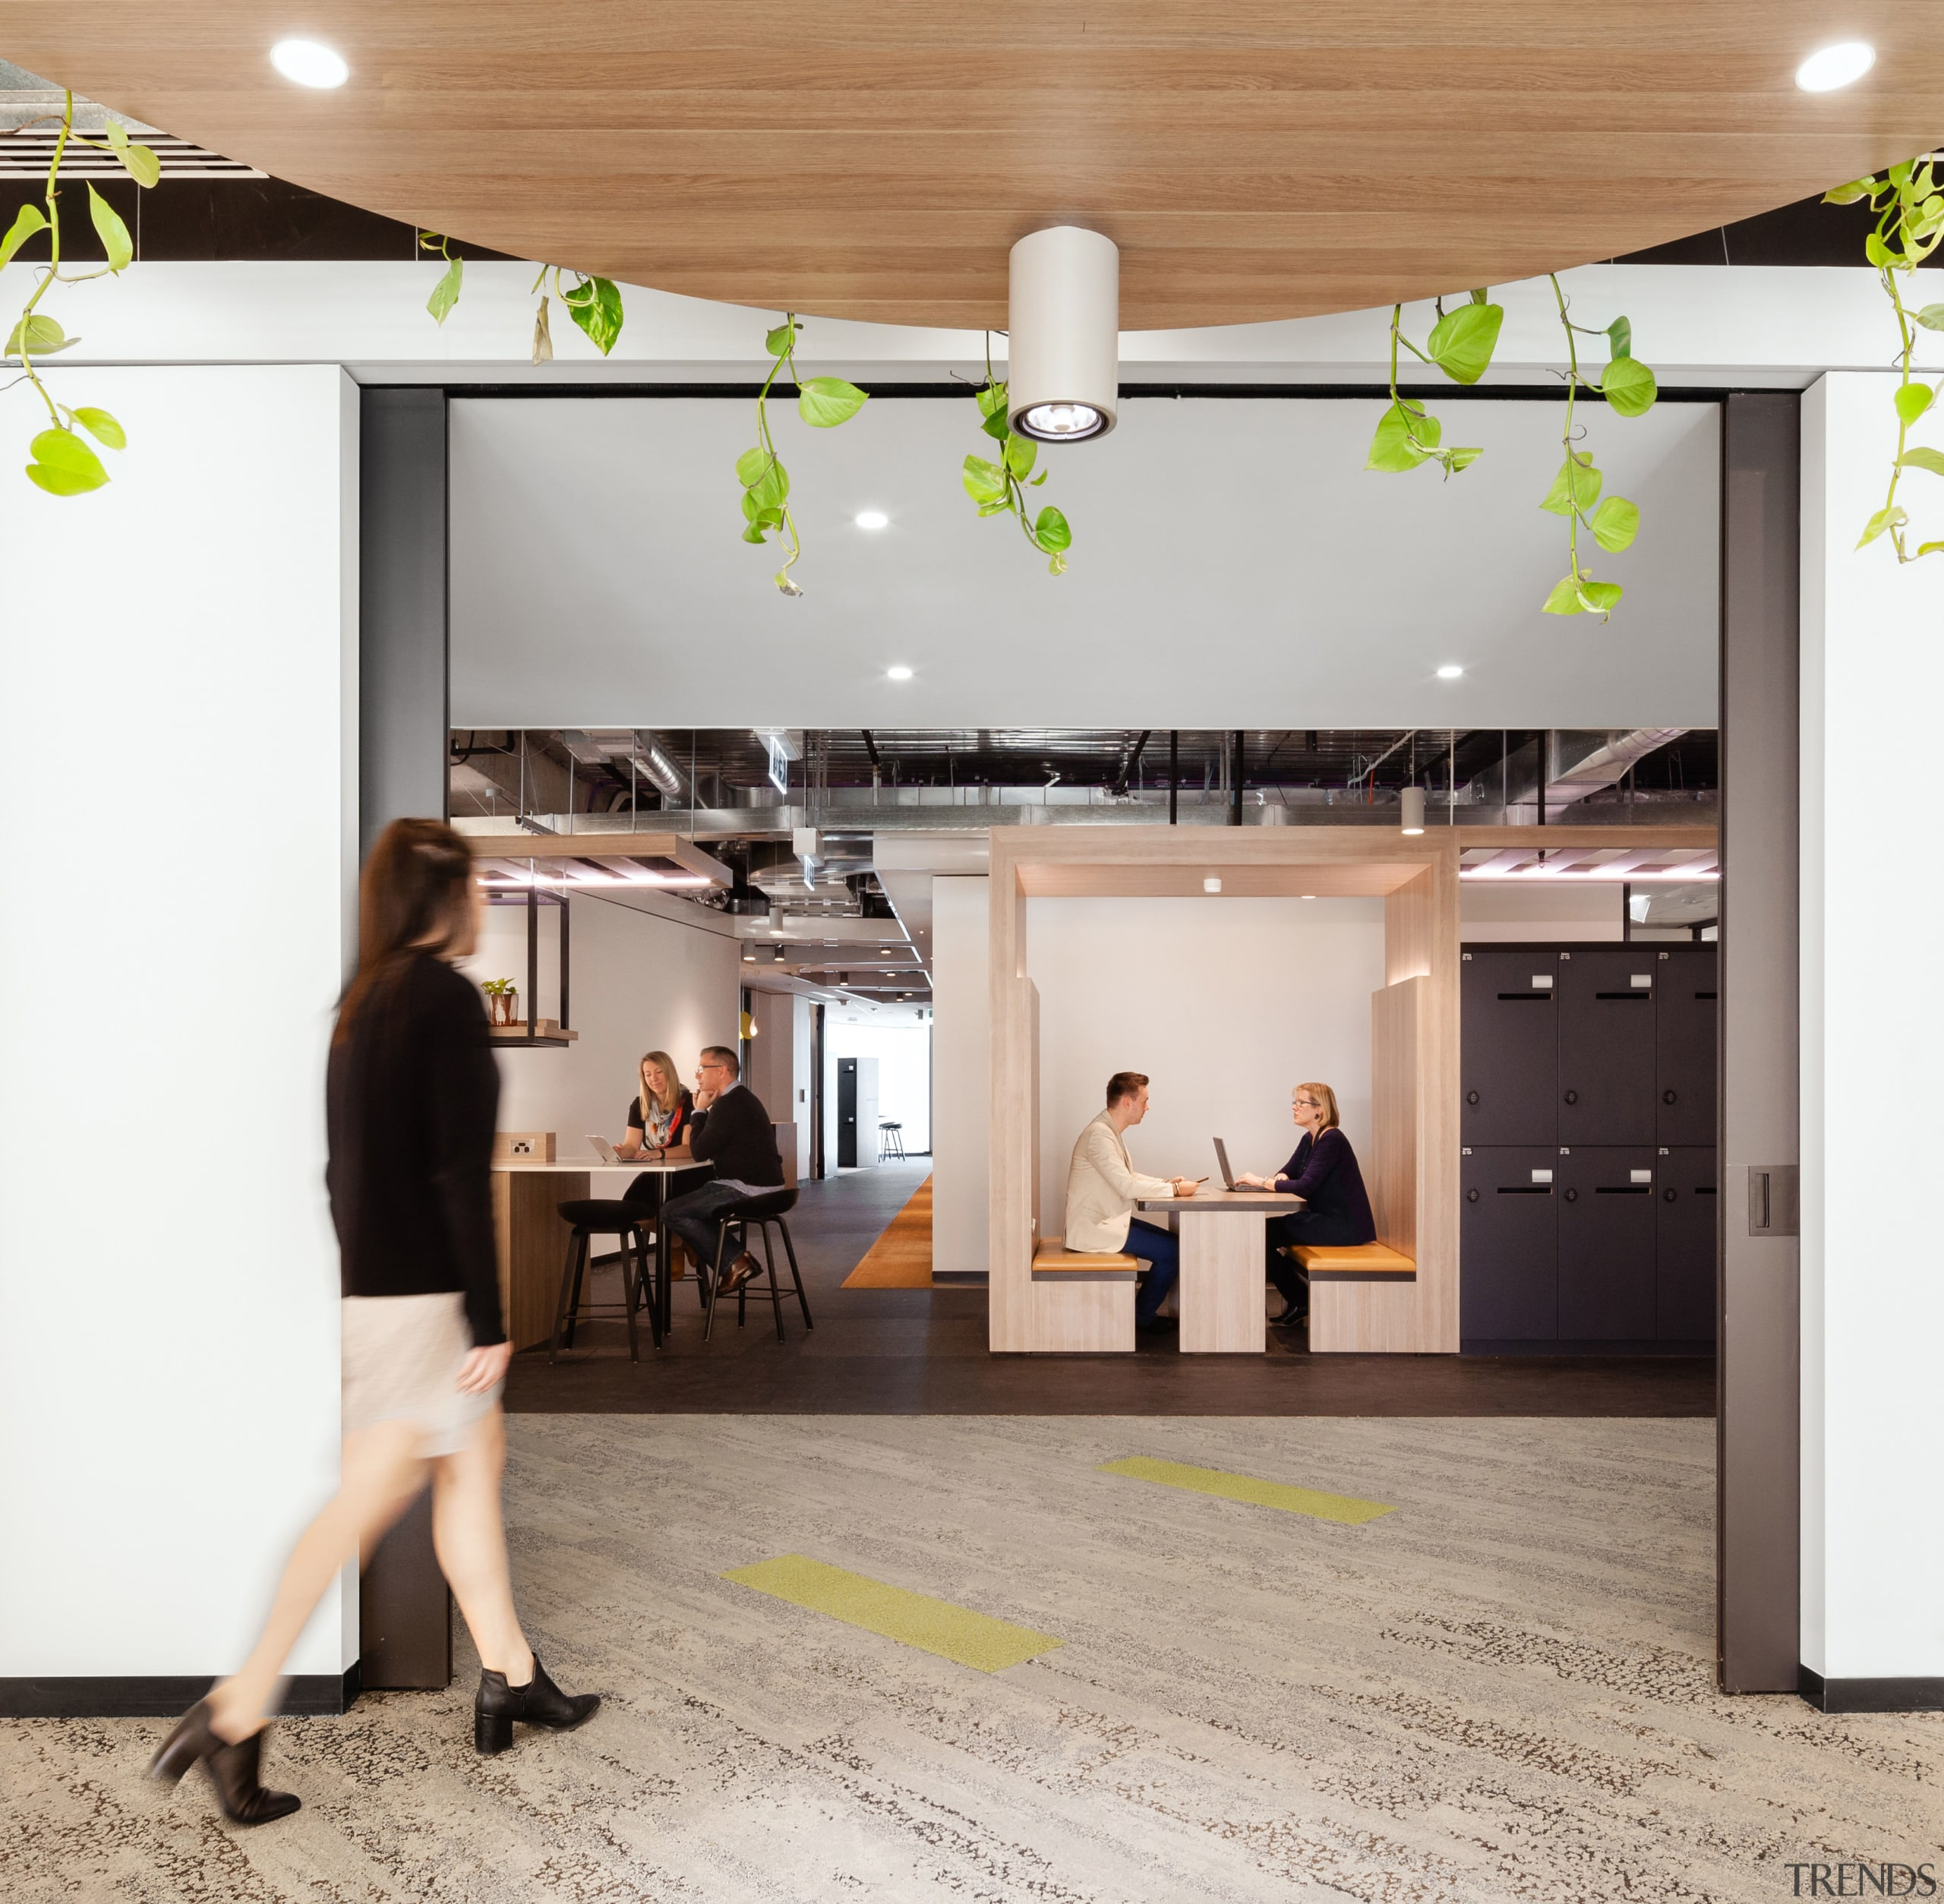 Jelly Bean workplace design means offices have many ceiling, flooring, furniture, interior design, lobby, product design, gray